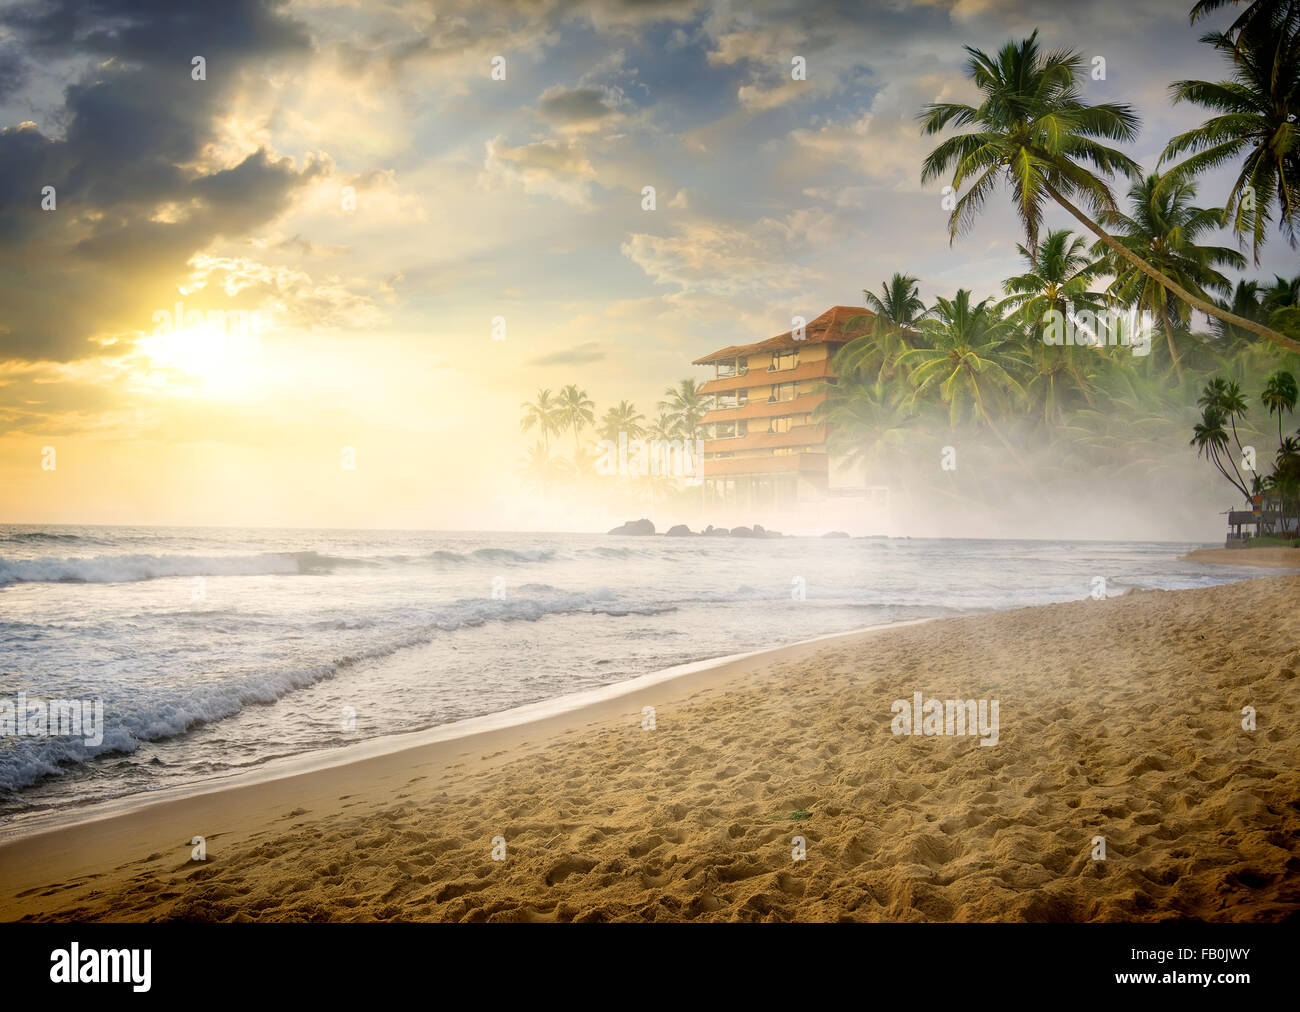 Morning fog over sandy beach of the ocean - Stock Image